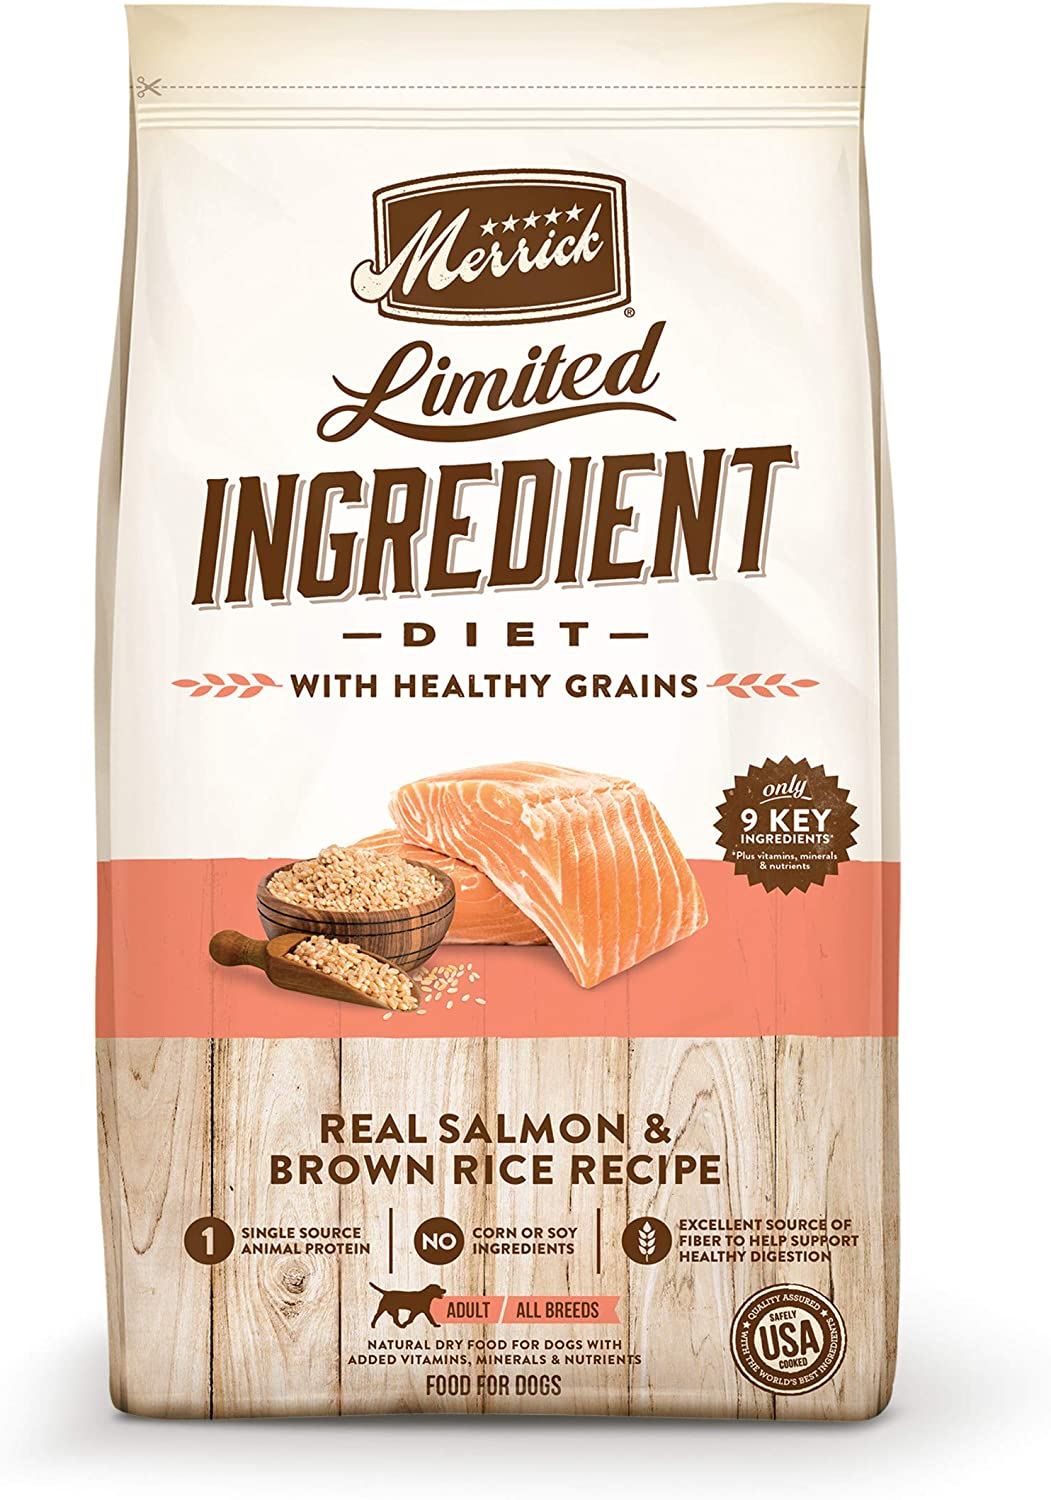 Merrick Limited Ingredient Diet Salmon & Brown Rice Recipe Dry Dog Food